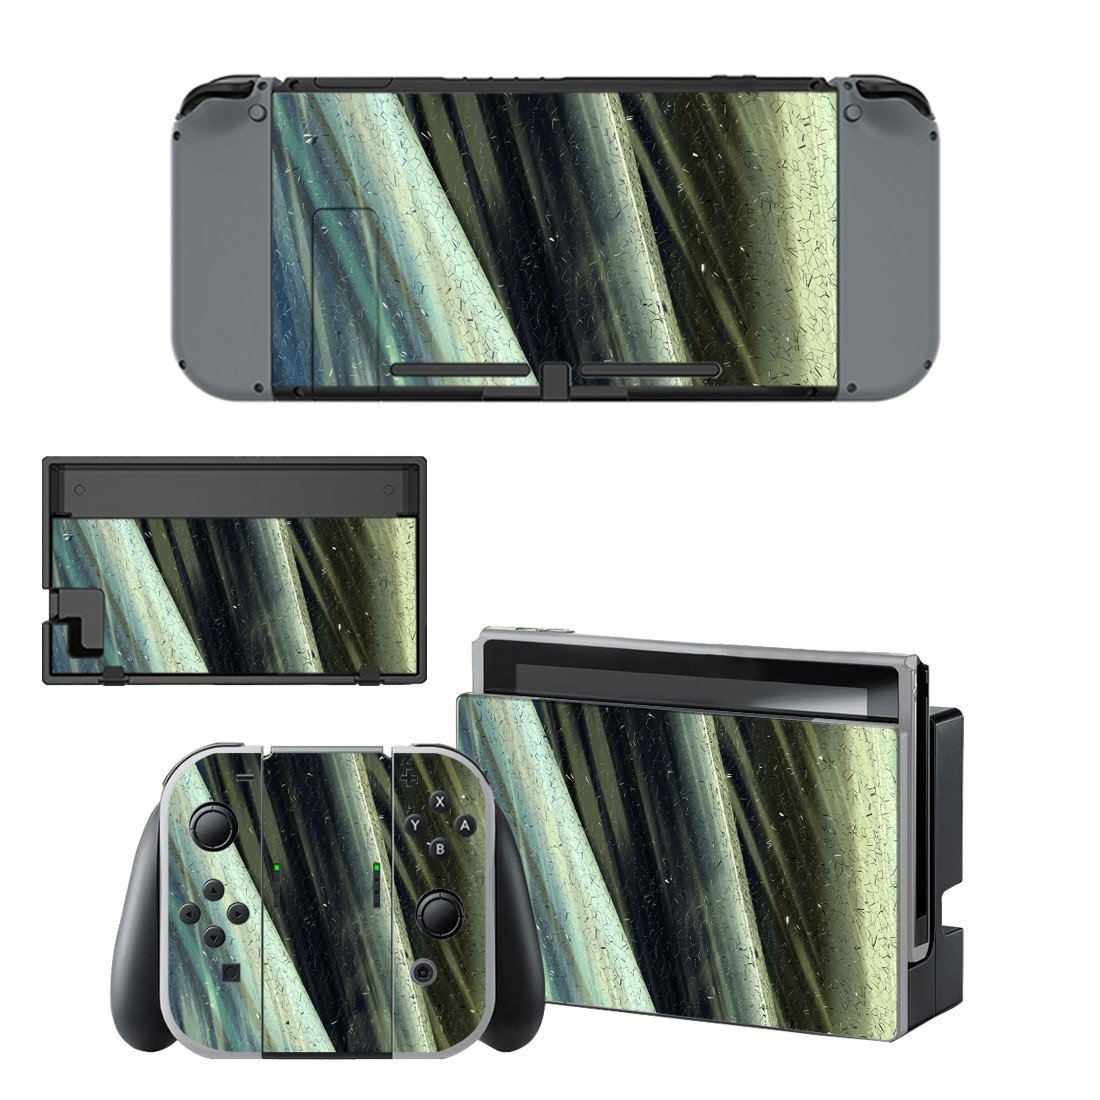 Tech wallpaper decal skin sticker for Nintendo Switch console and controllers